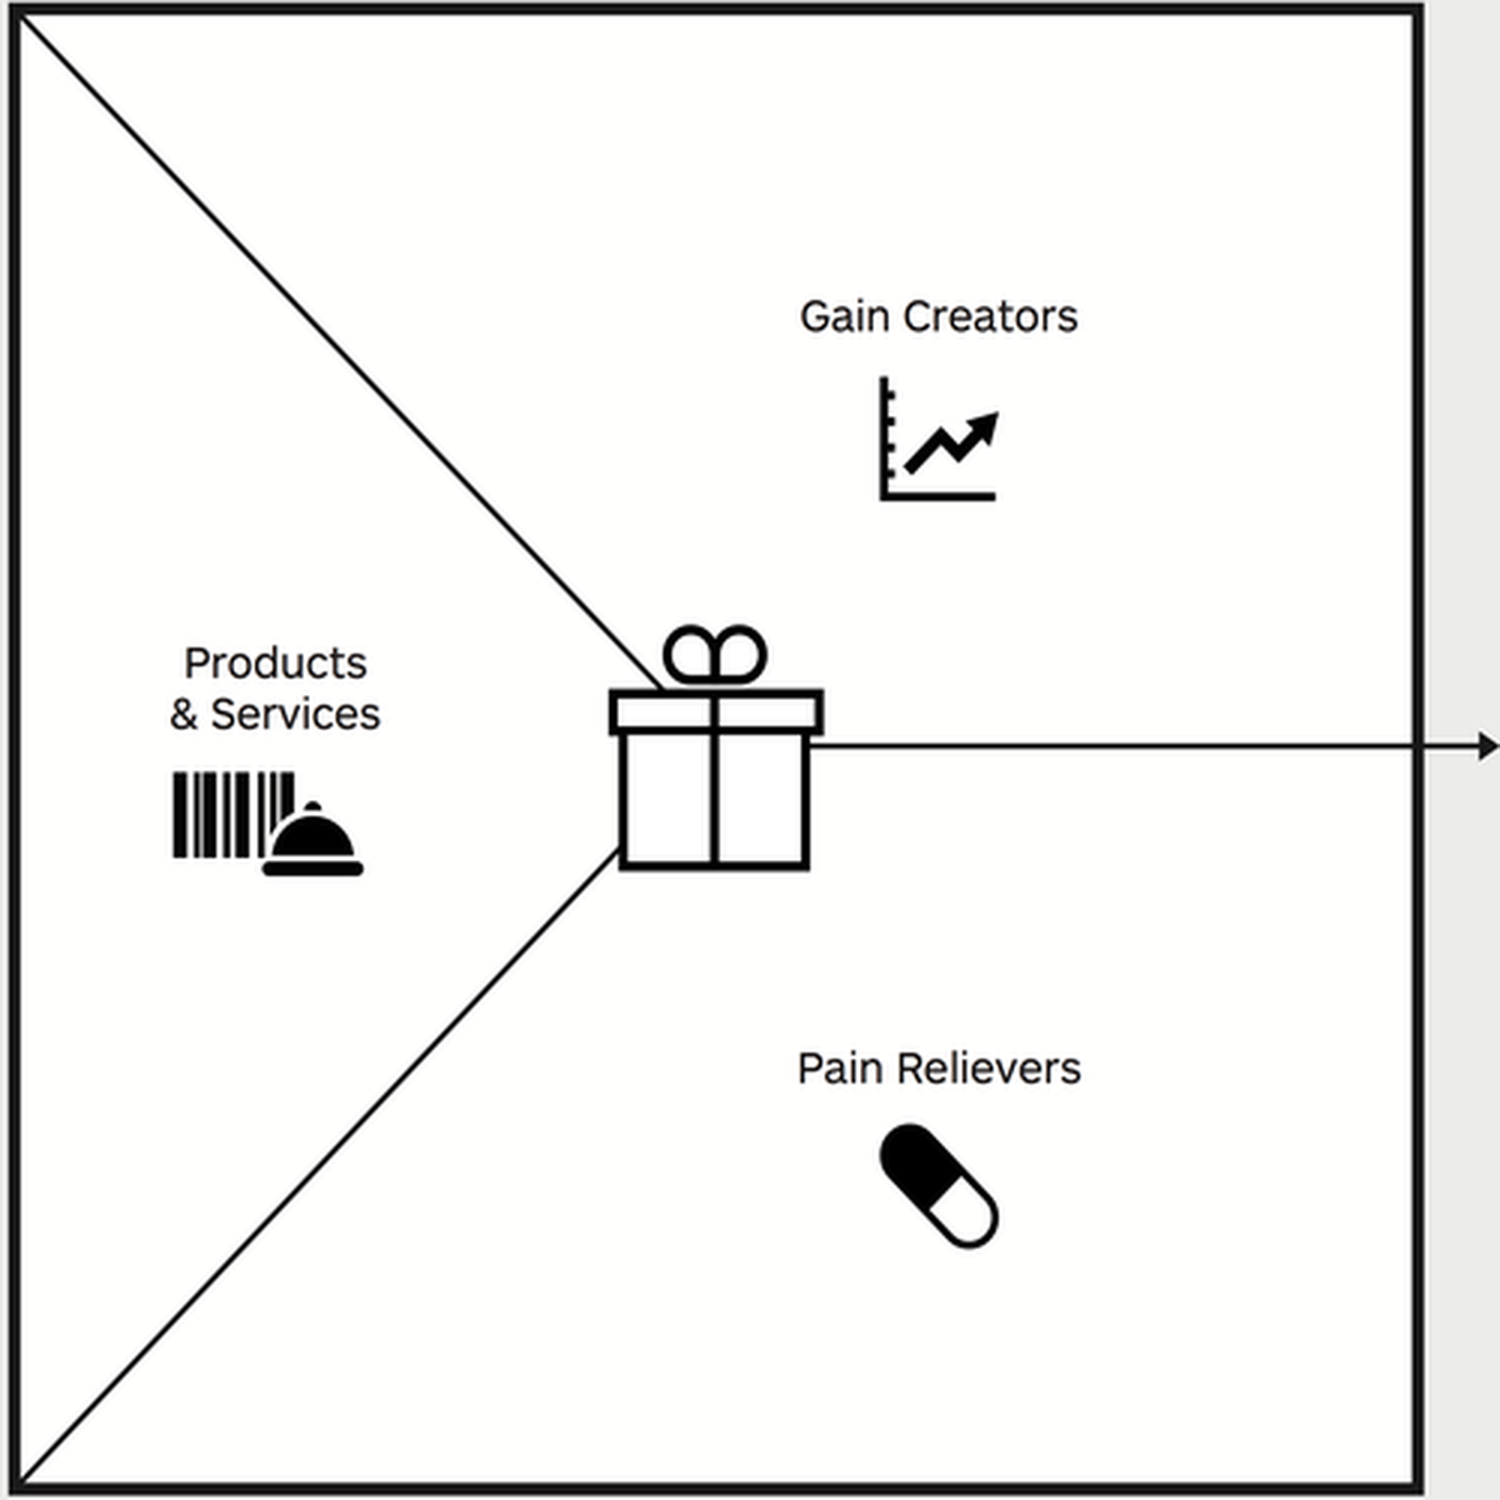 Die Value Map aus dem Value Proposition Canvas